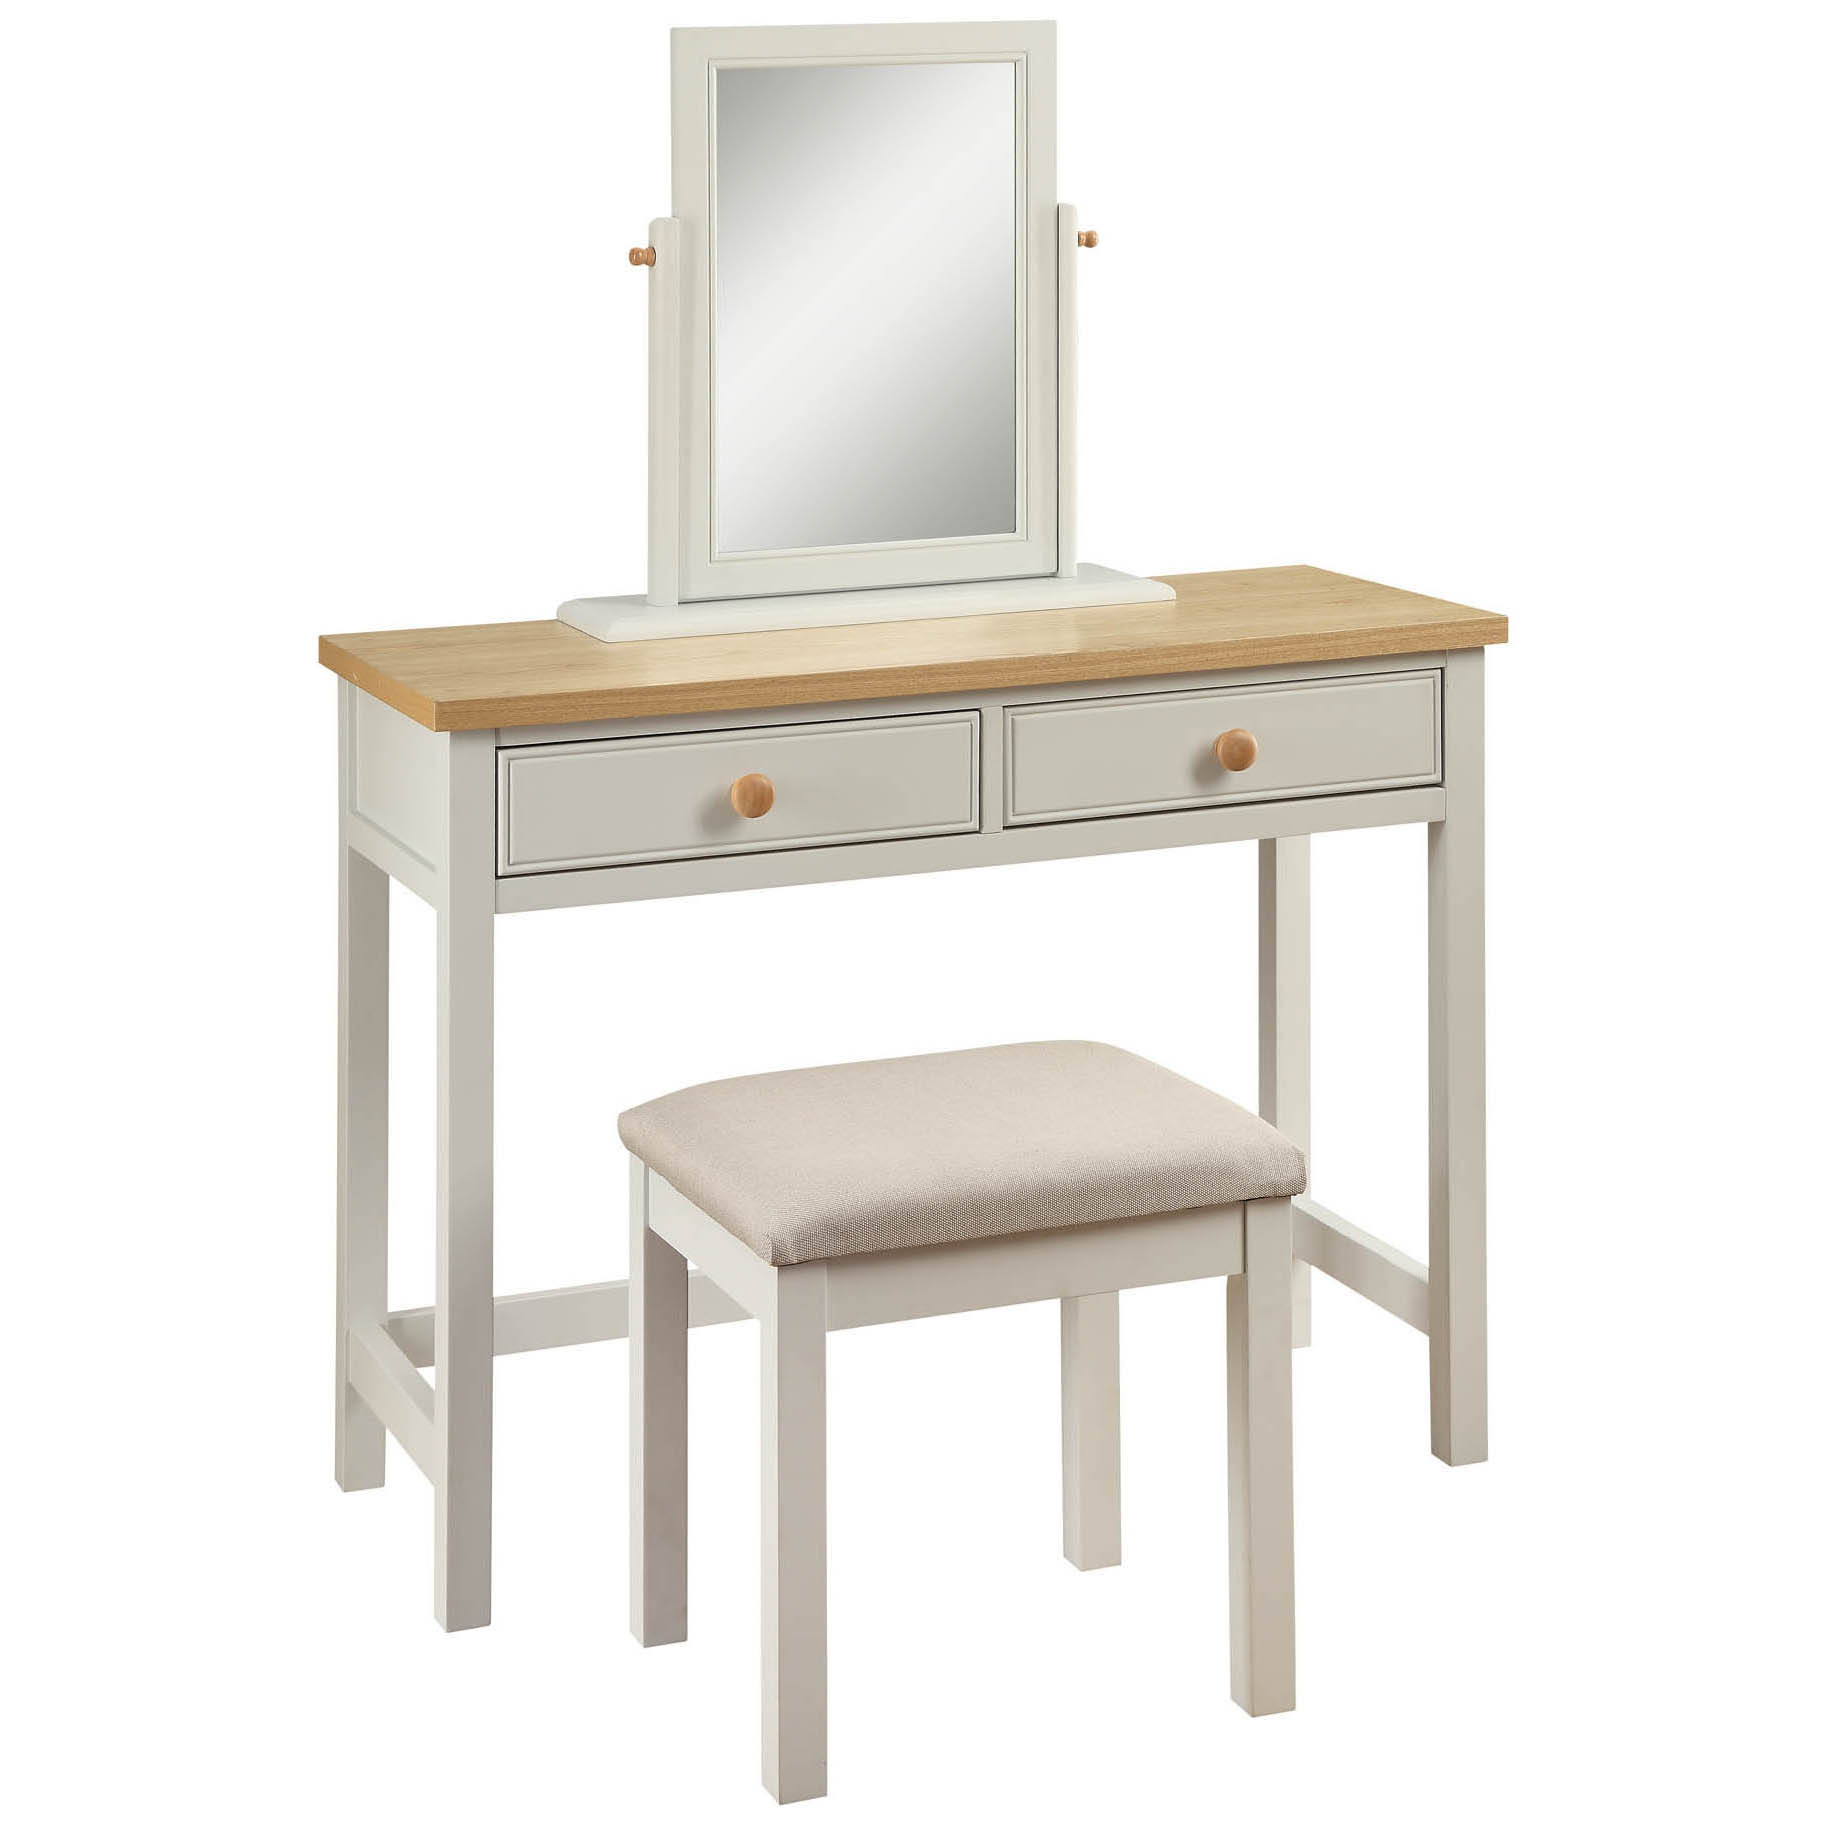 Description Dove Grey And Real Ash Veneer Dressing Table With 2 Drawers An Optional Mirror This Has Round Wooden Handles Would Suit Any